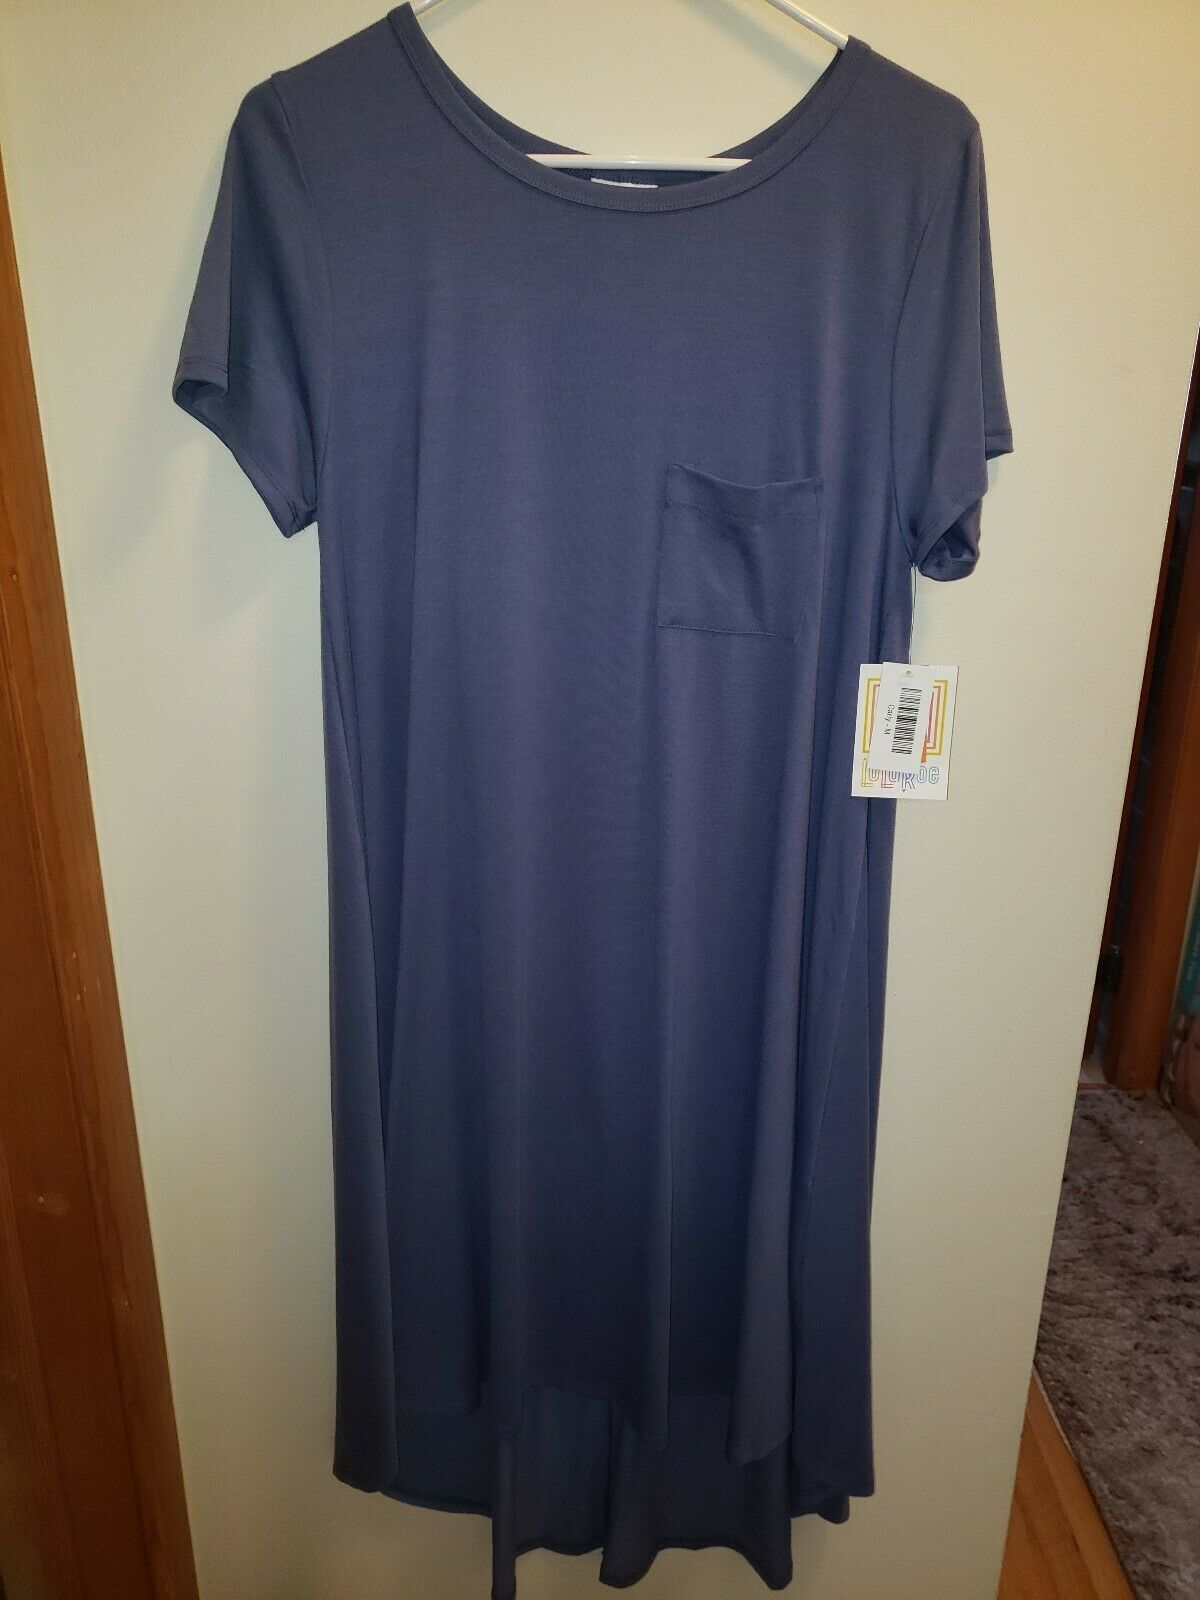 LuLaRoe NWT M Purple Periwinkle colord Carly